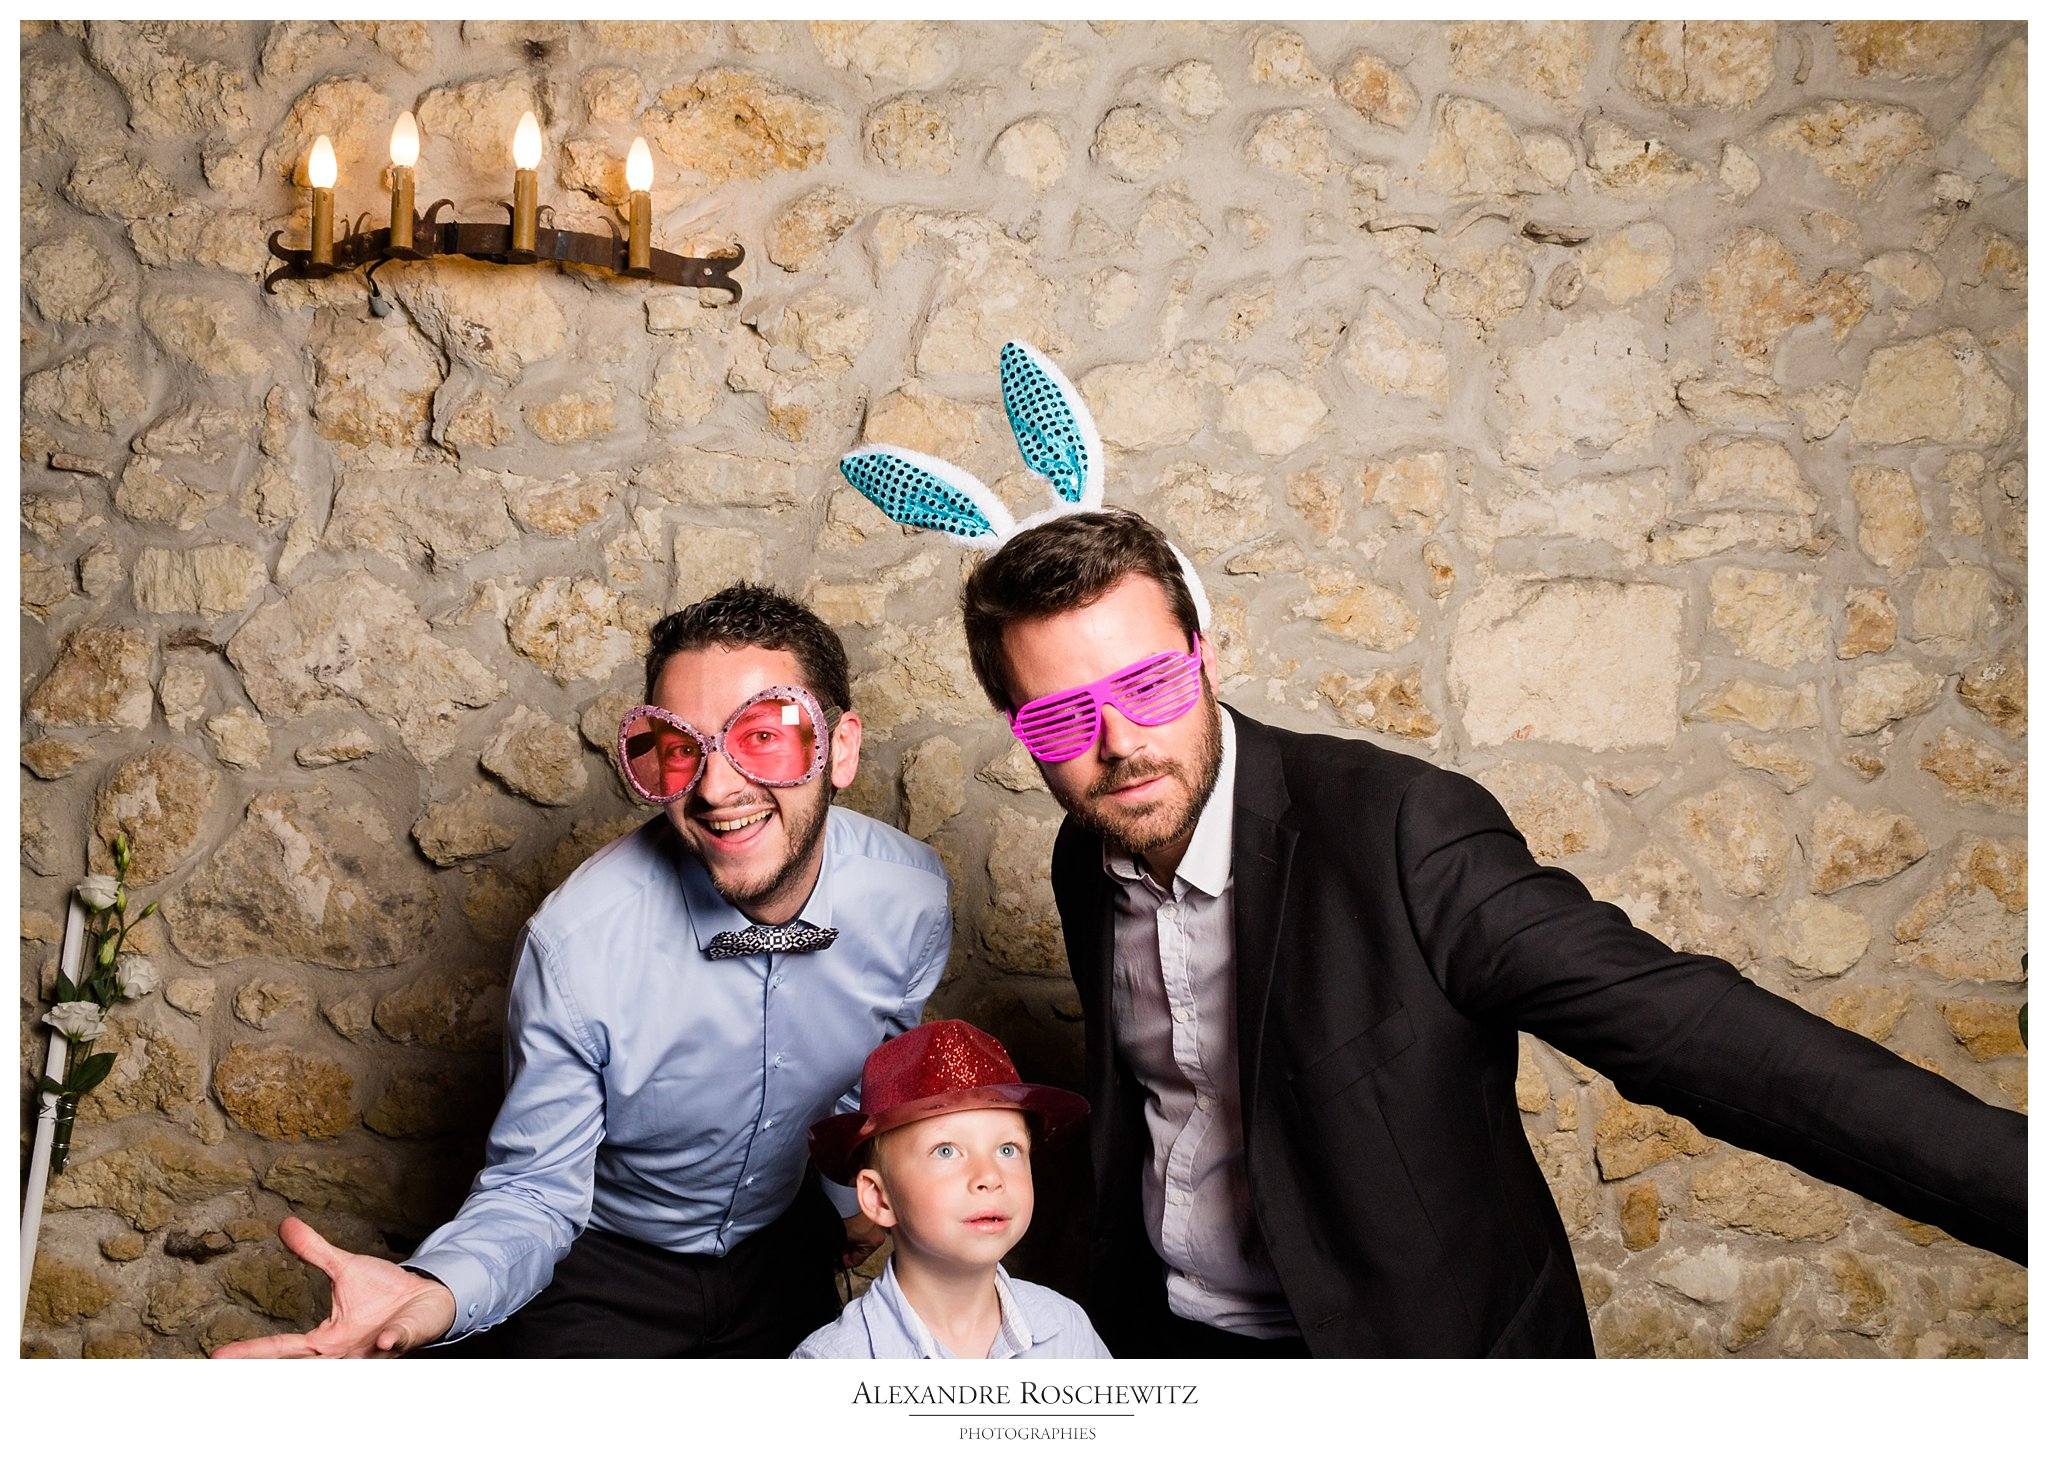 photobooth-mariage-merignac-gironde-maud-anthony-chateau-cujac-alexandre-roschewitz-photographies_1365_2048px